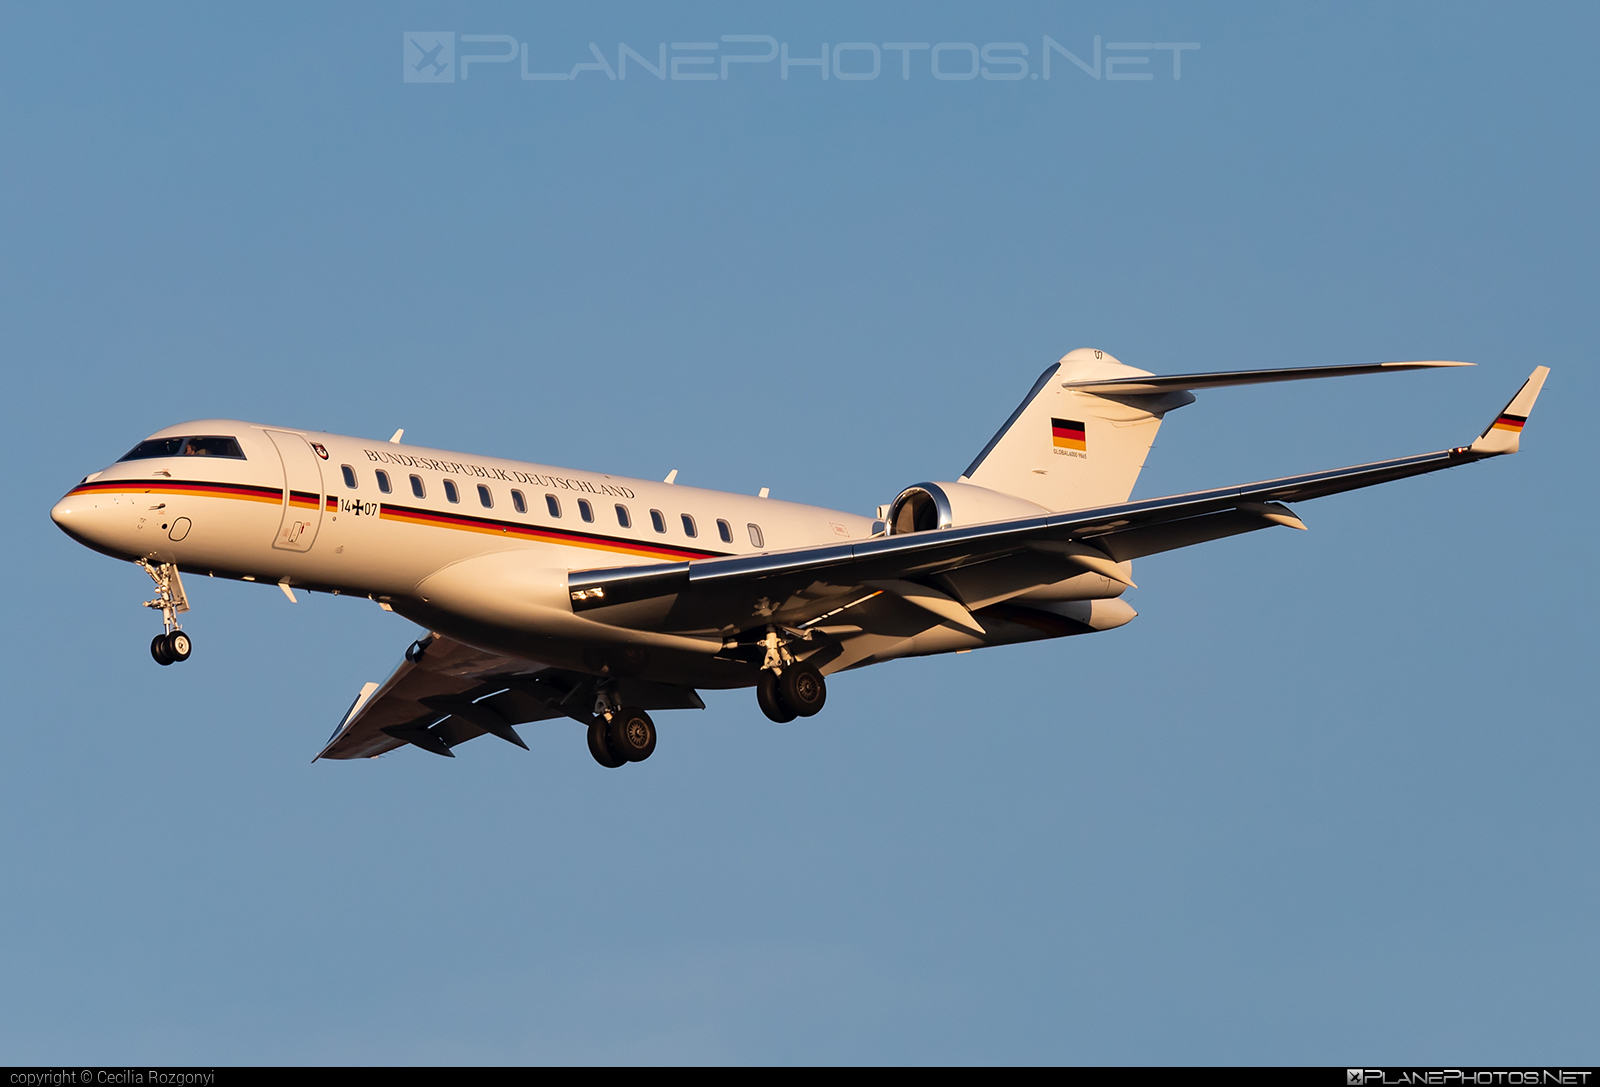 Bombardier Global 6000 (BD-700-1A10) - 14+07 operated by Luftwaffe (German Air Force) #GermanAirForce #bd7001a10 #bombardier #bombardierglobal6000 #global6000 #luftwaffe